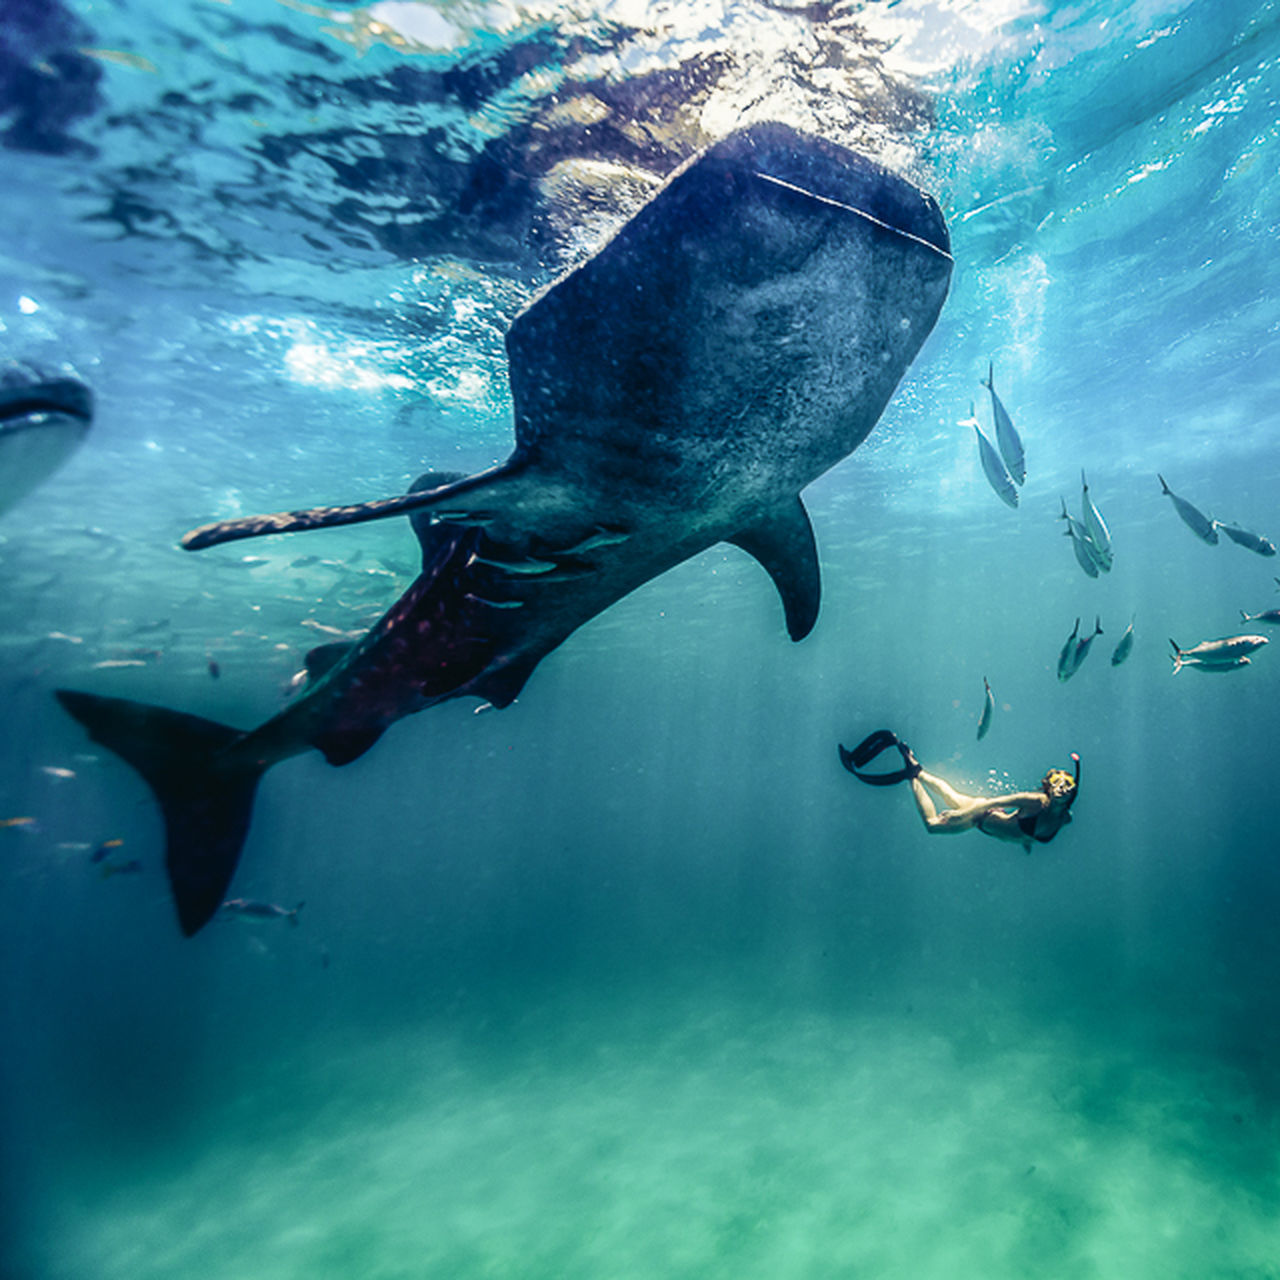 underwater, fish, sea life, undersea, animal themes, animals in the wild, swimming, sea, nature, animal wildlife, water, large group of animals, whale shark, no people, scuba diving, beauty in nature, full length, day, outdoors